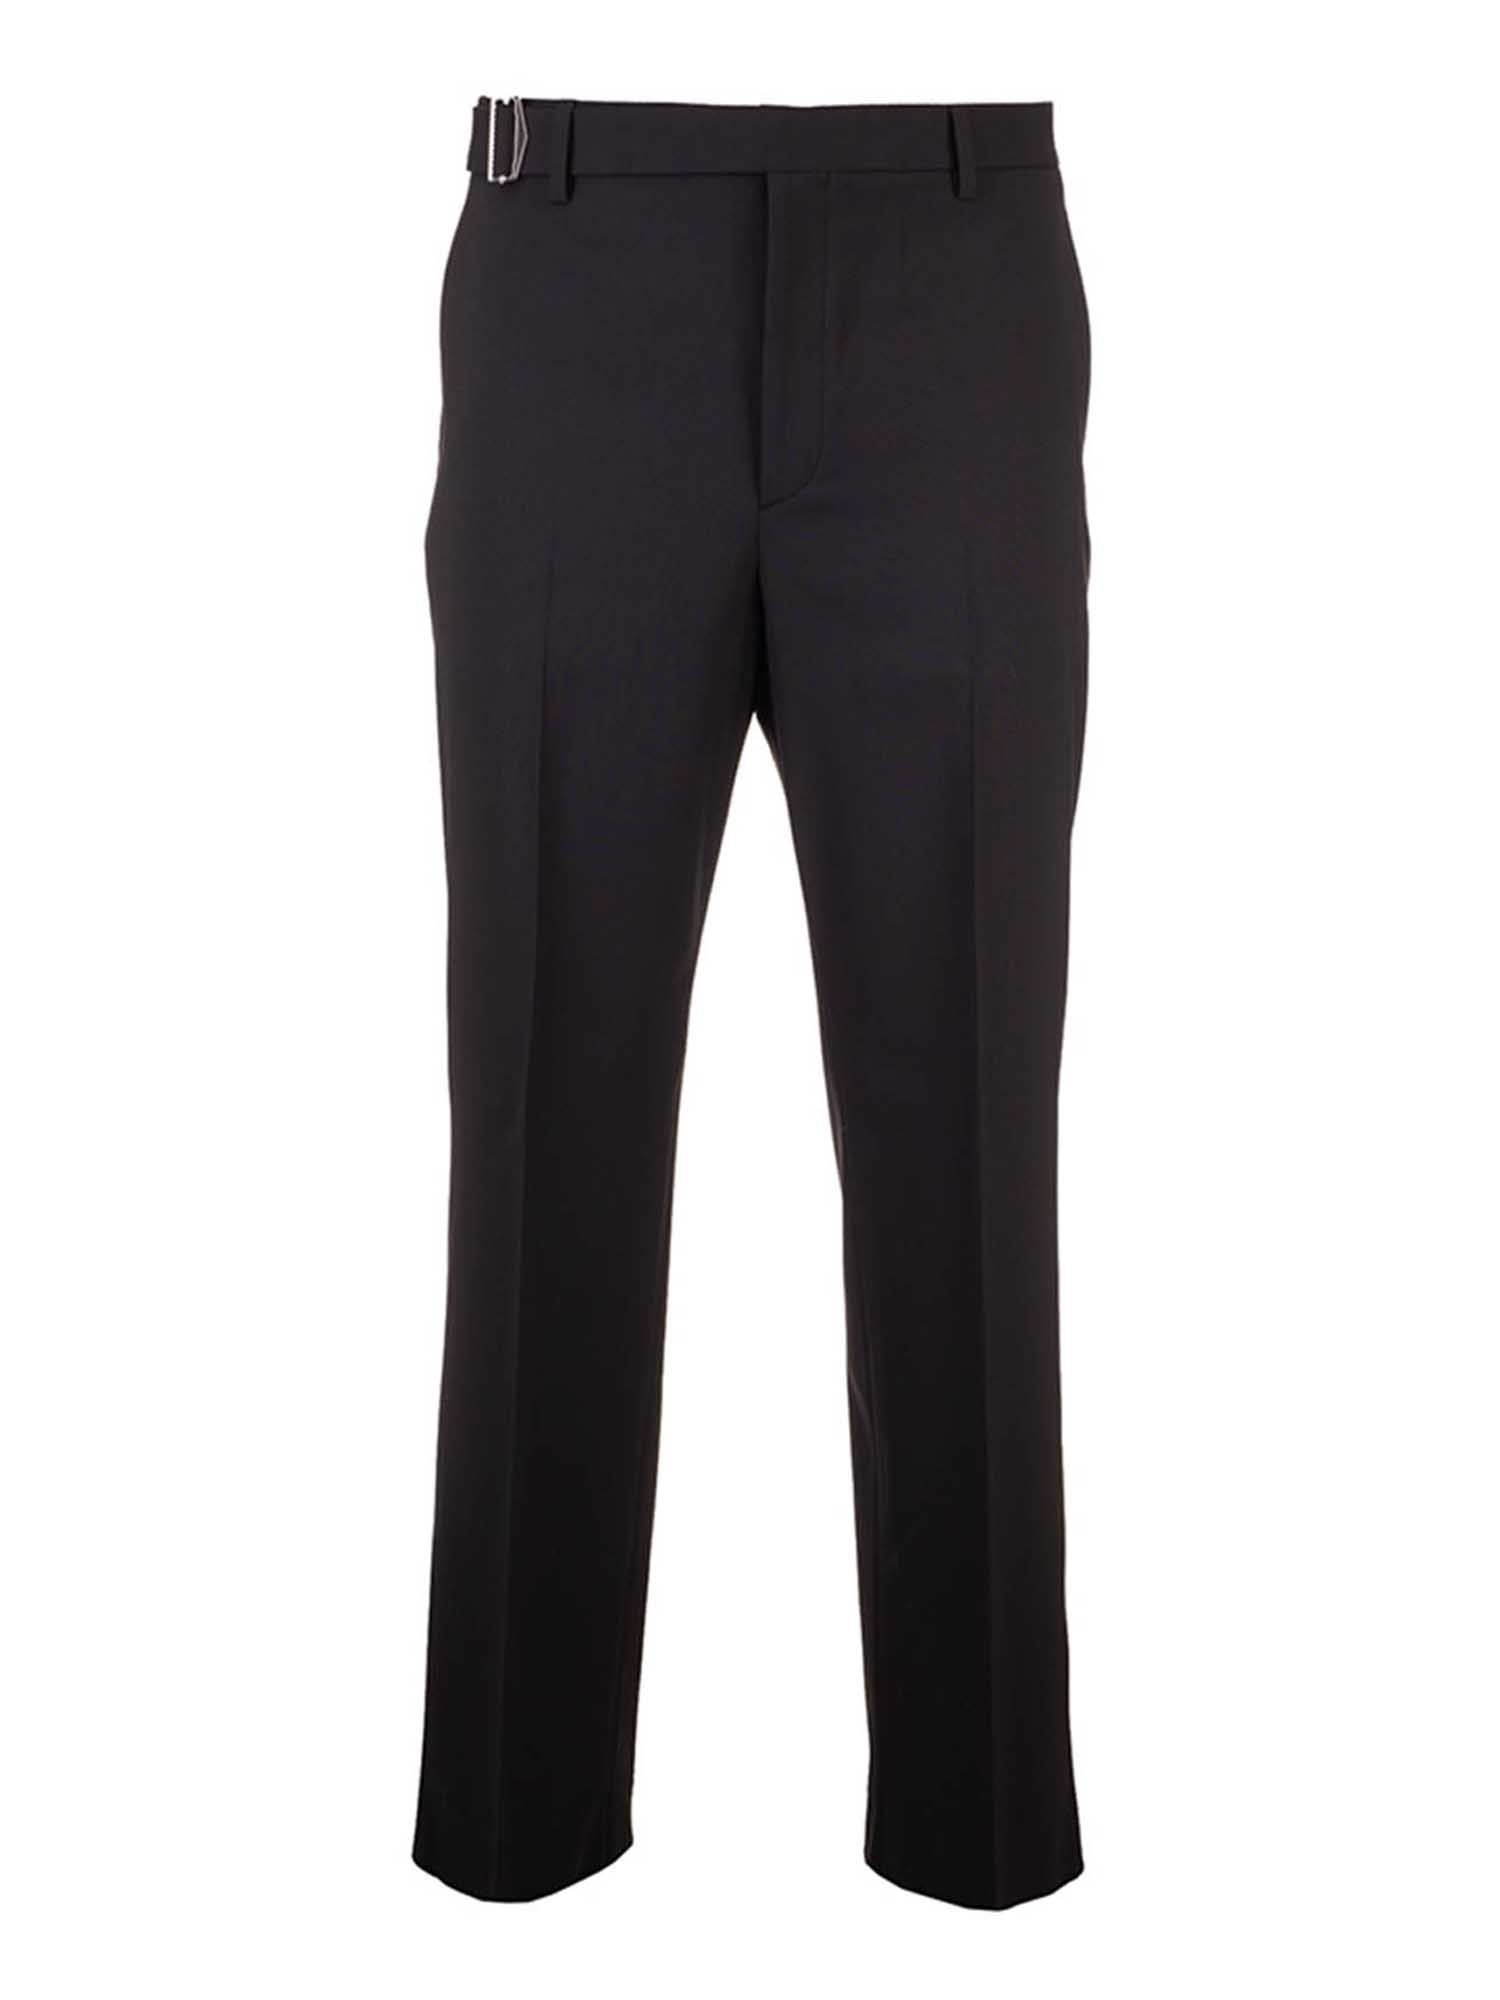 Valentino BELT PANTS IN BLACK